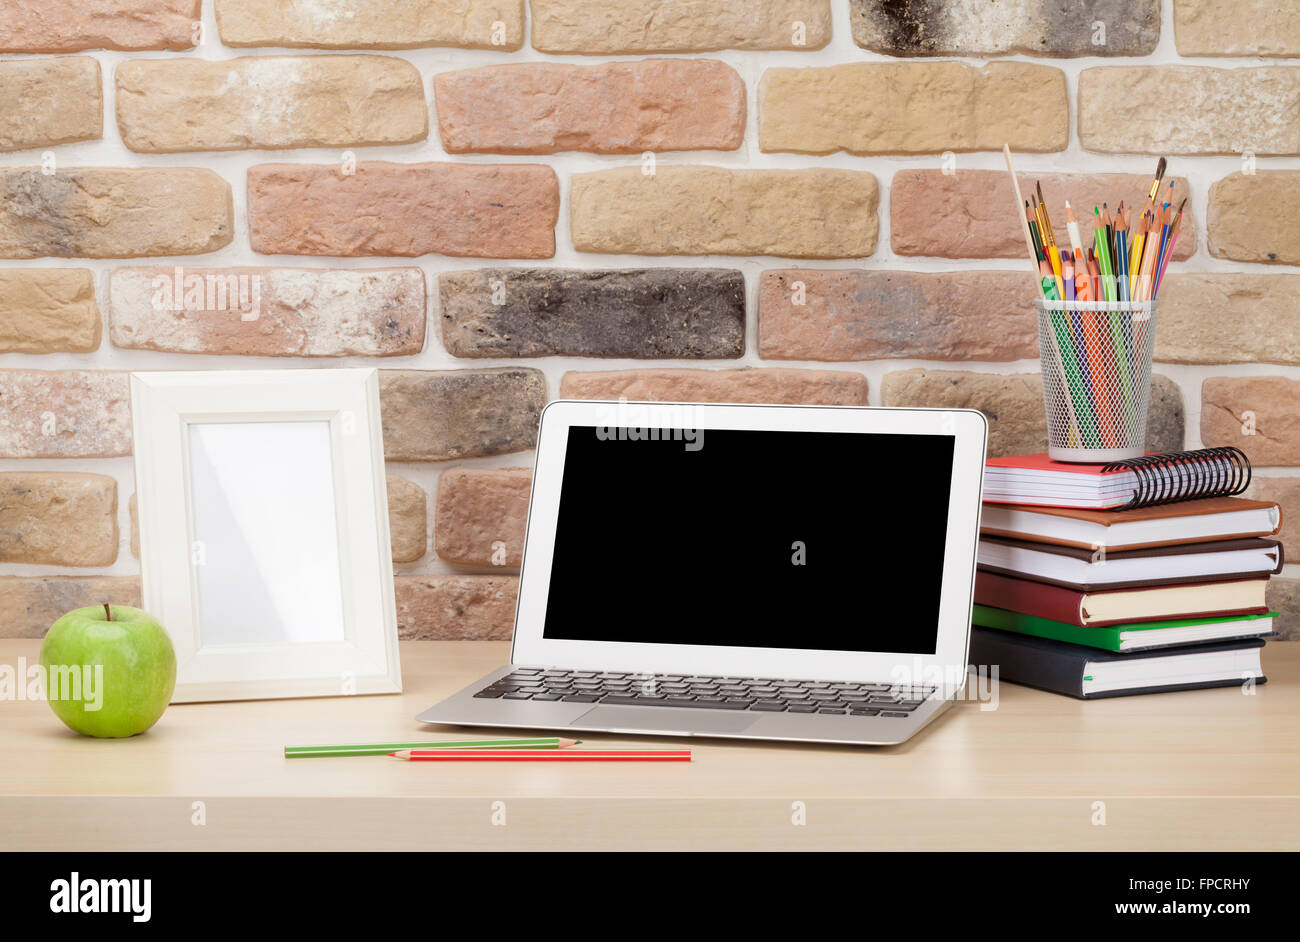 Office Desk And Photo Frame Stock Photos  Office Desk And